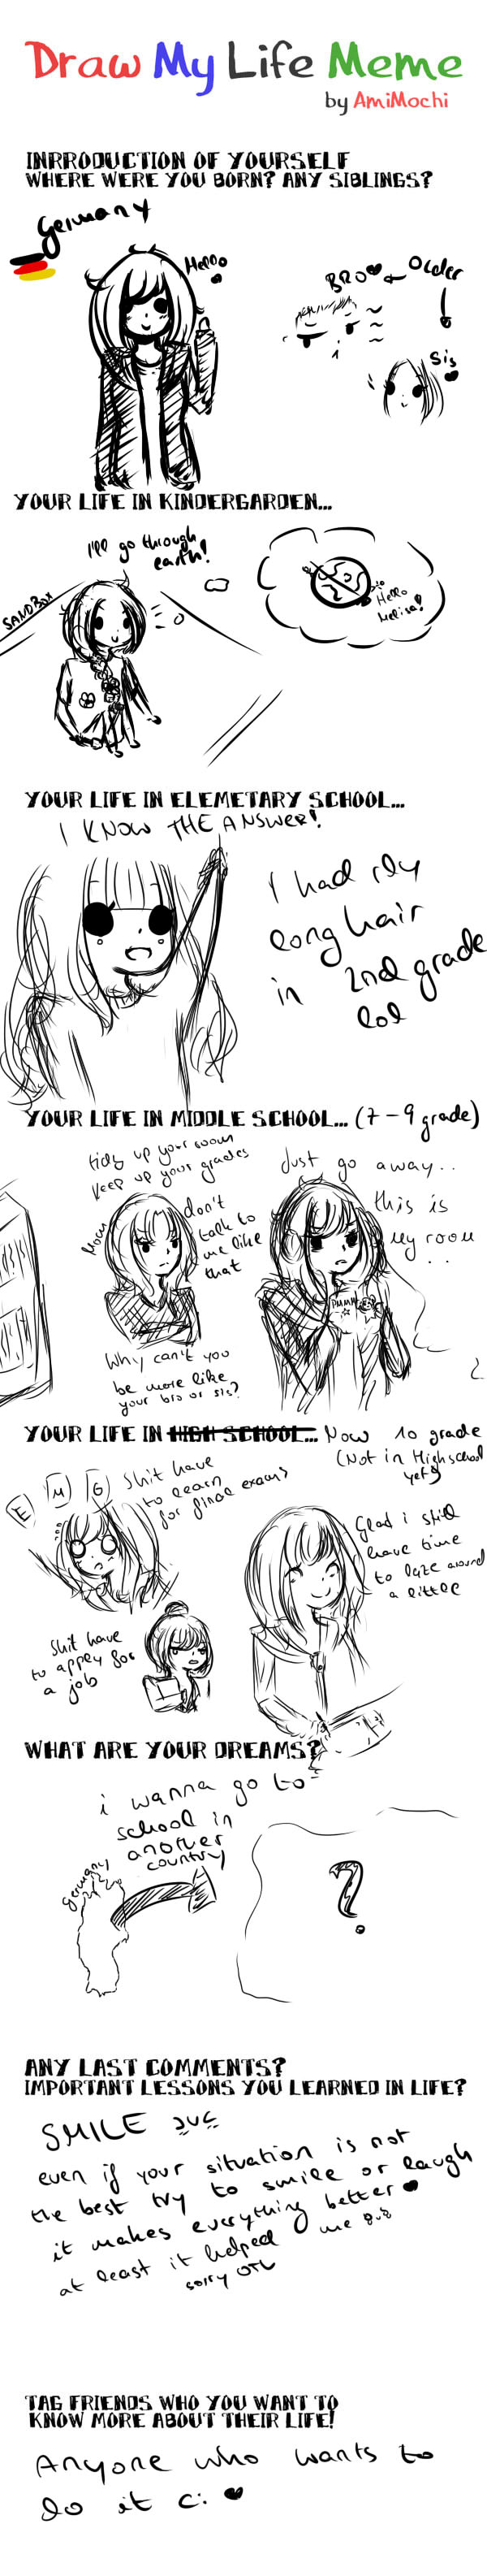 Draw my life meme by Togamicchi